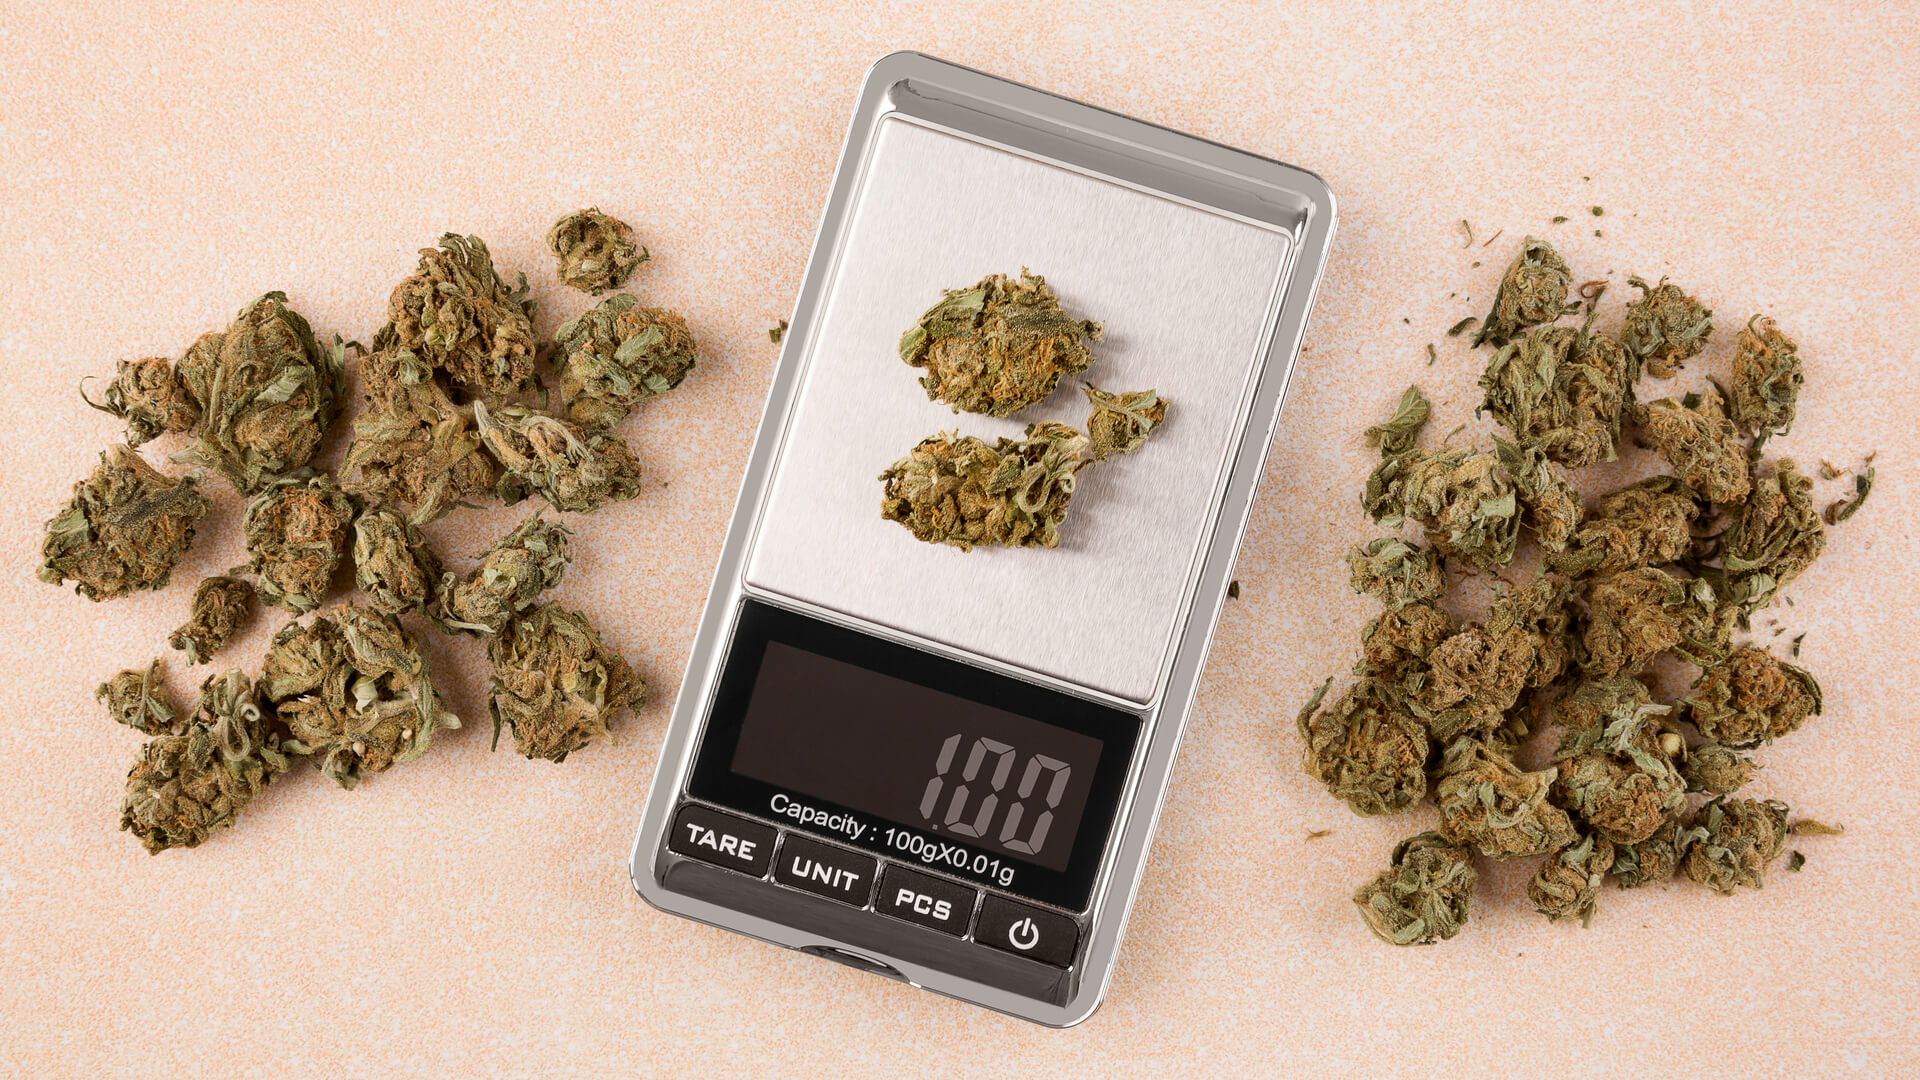 Weed Measurements Guide: From a Gram to an Oz